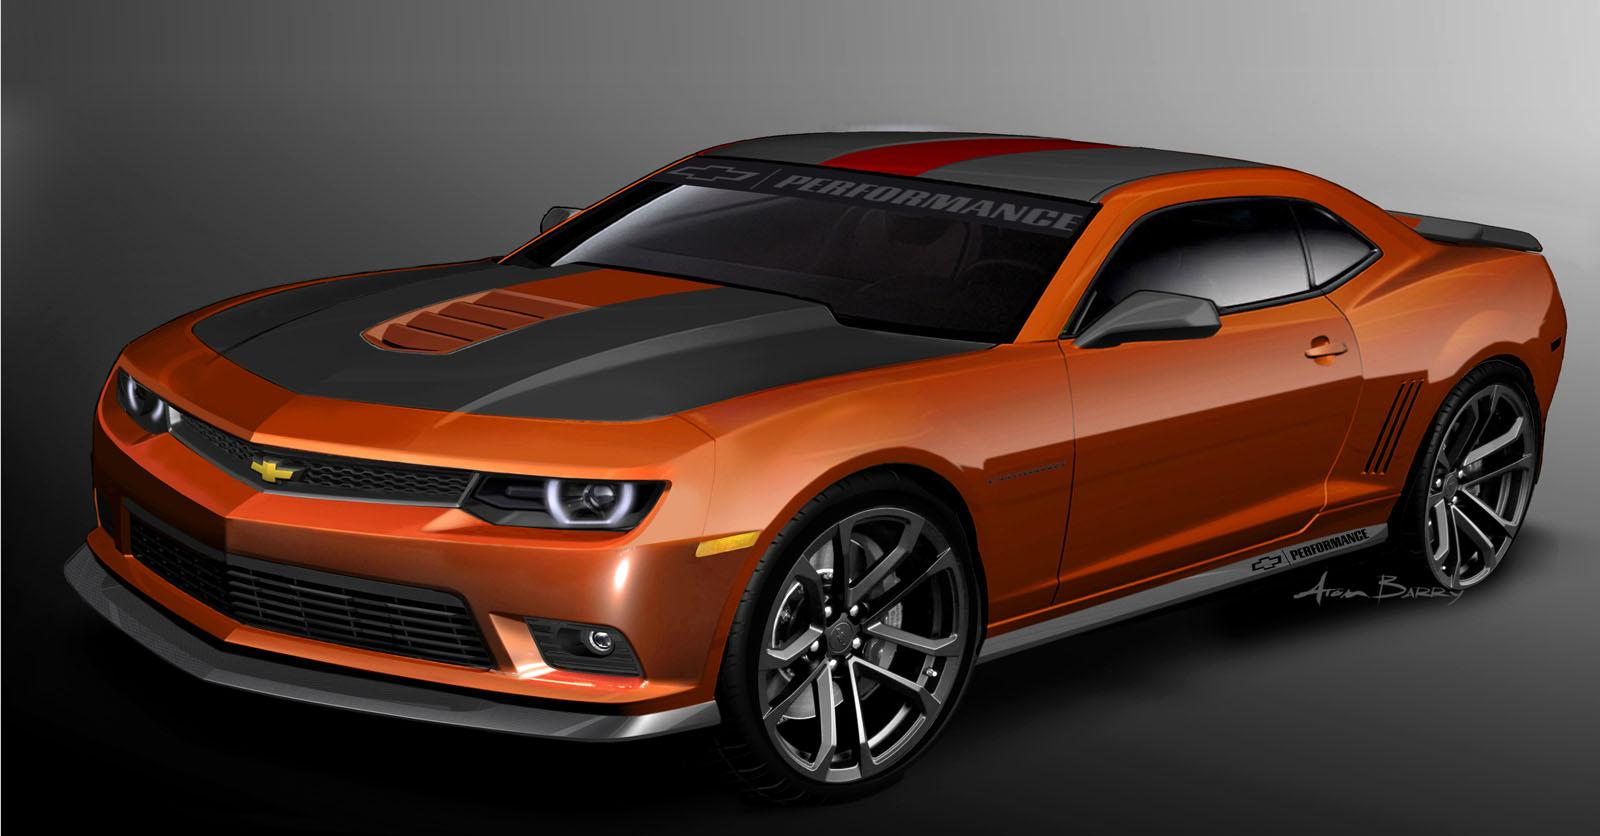 2014 Chevrolet Camaro Performance Garage Concept Top Speed